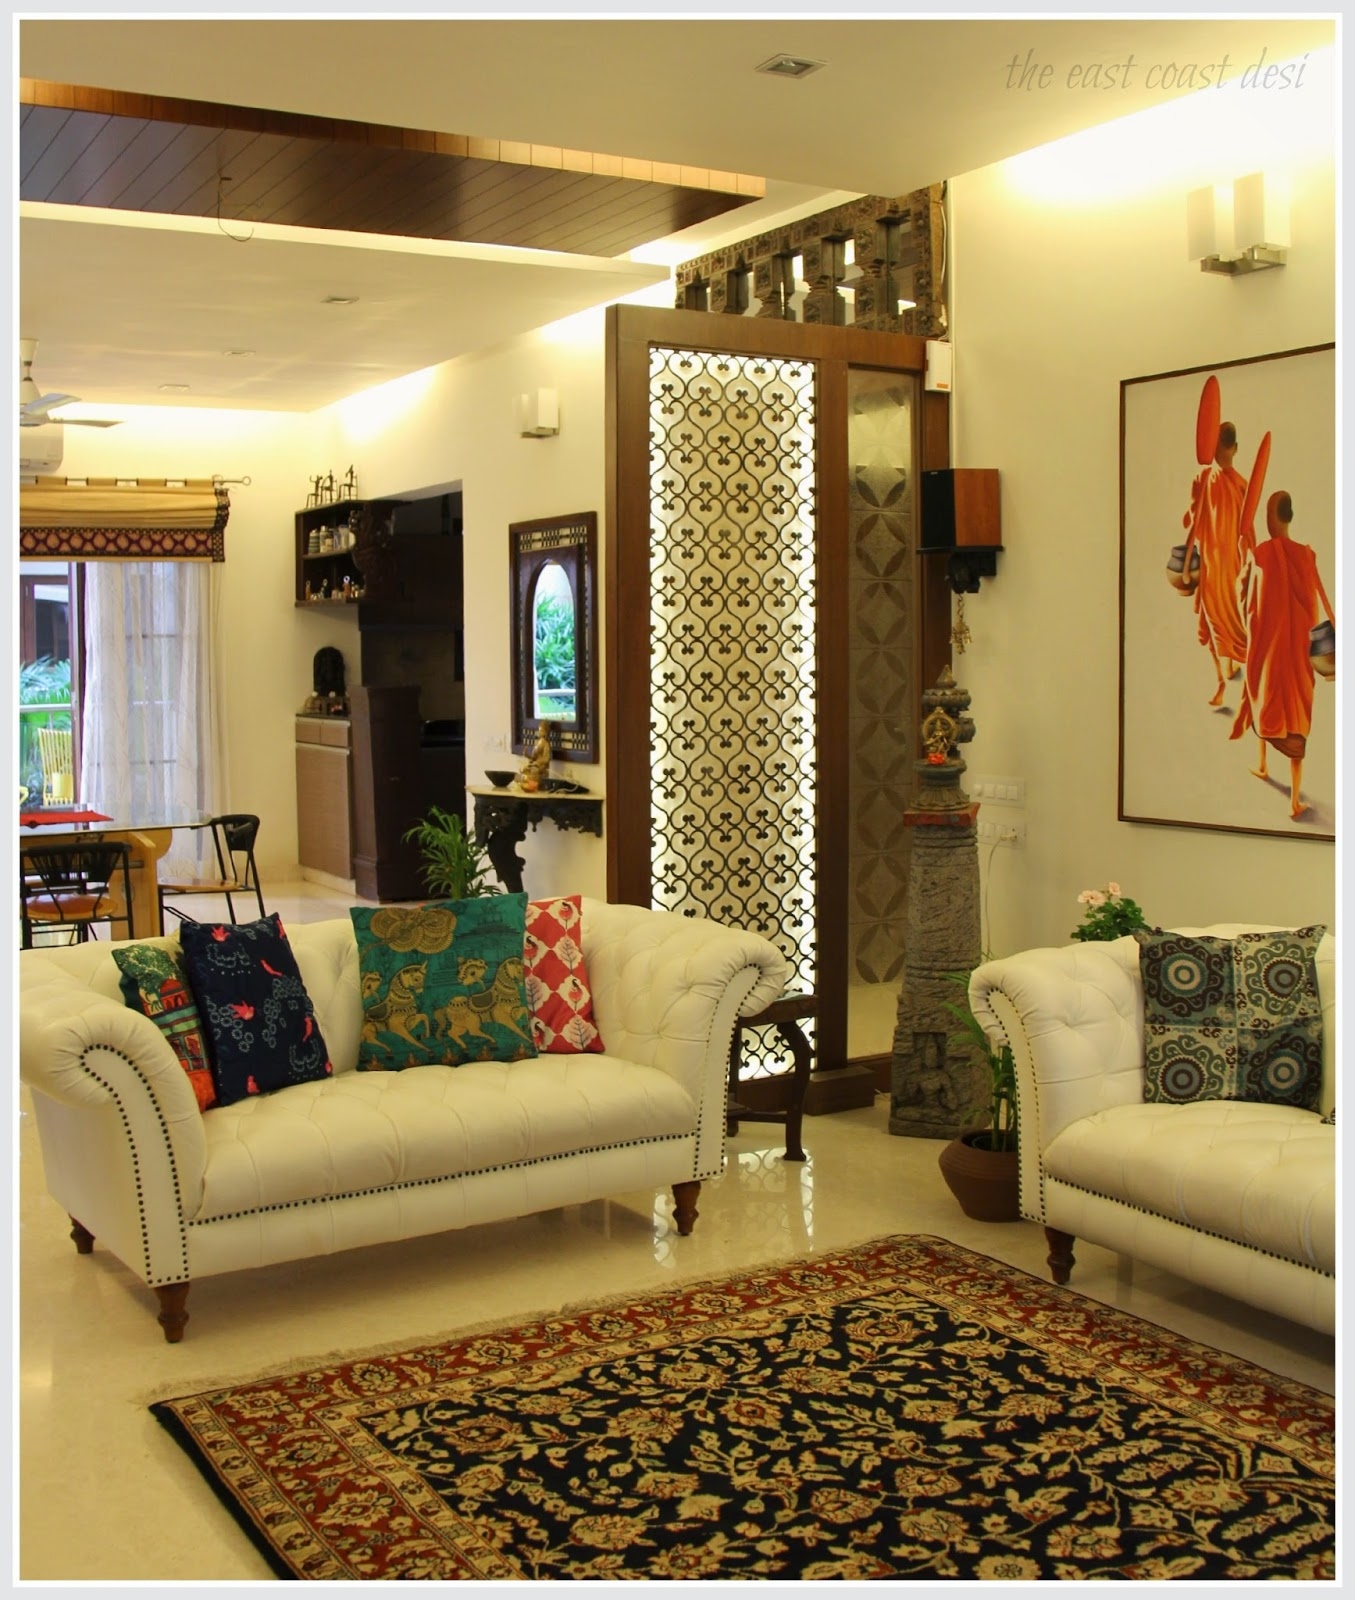 The east coast desi masterful mixing home tour Home interior design indian style